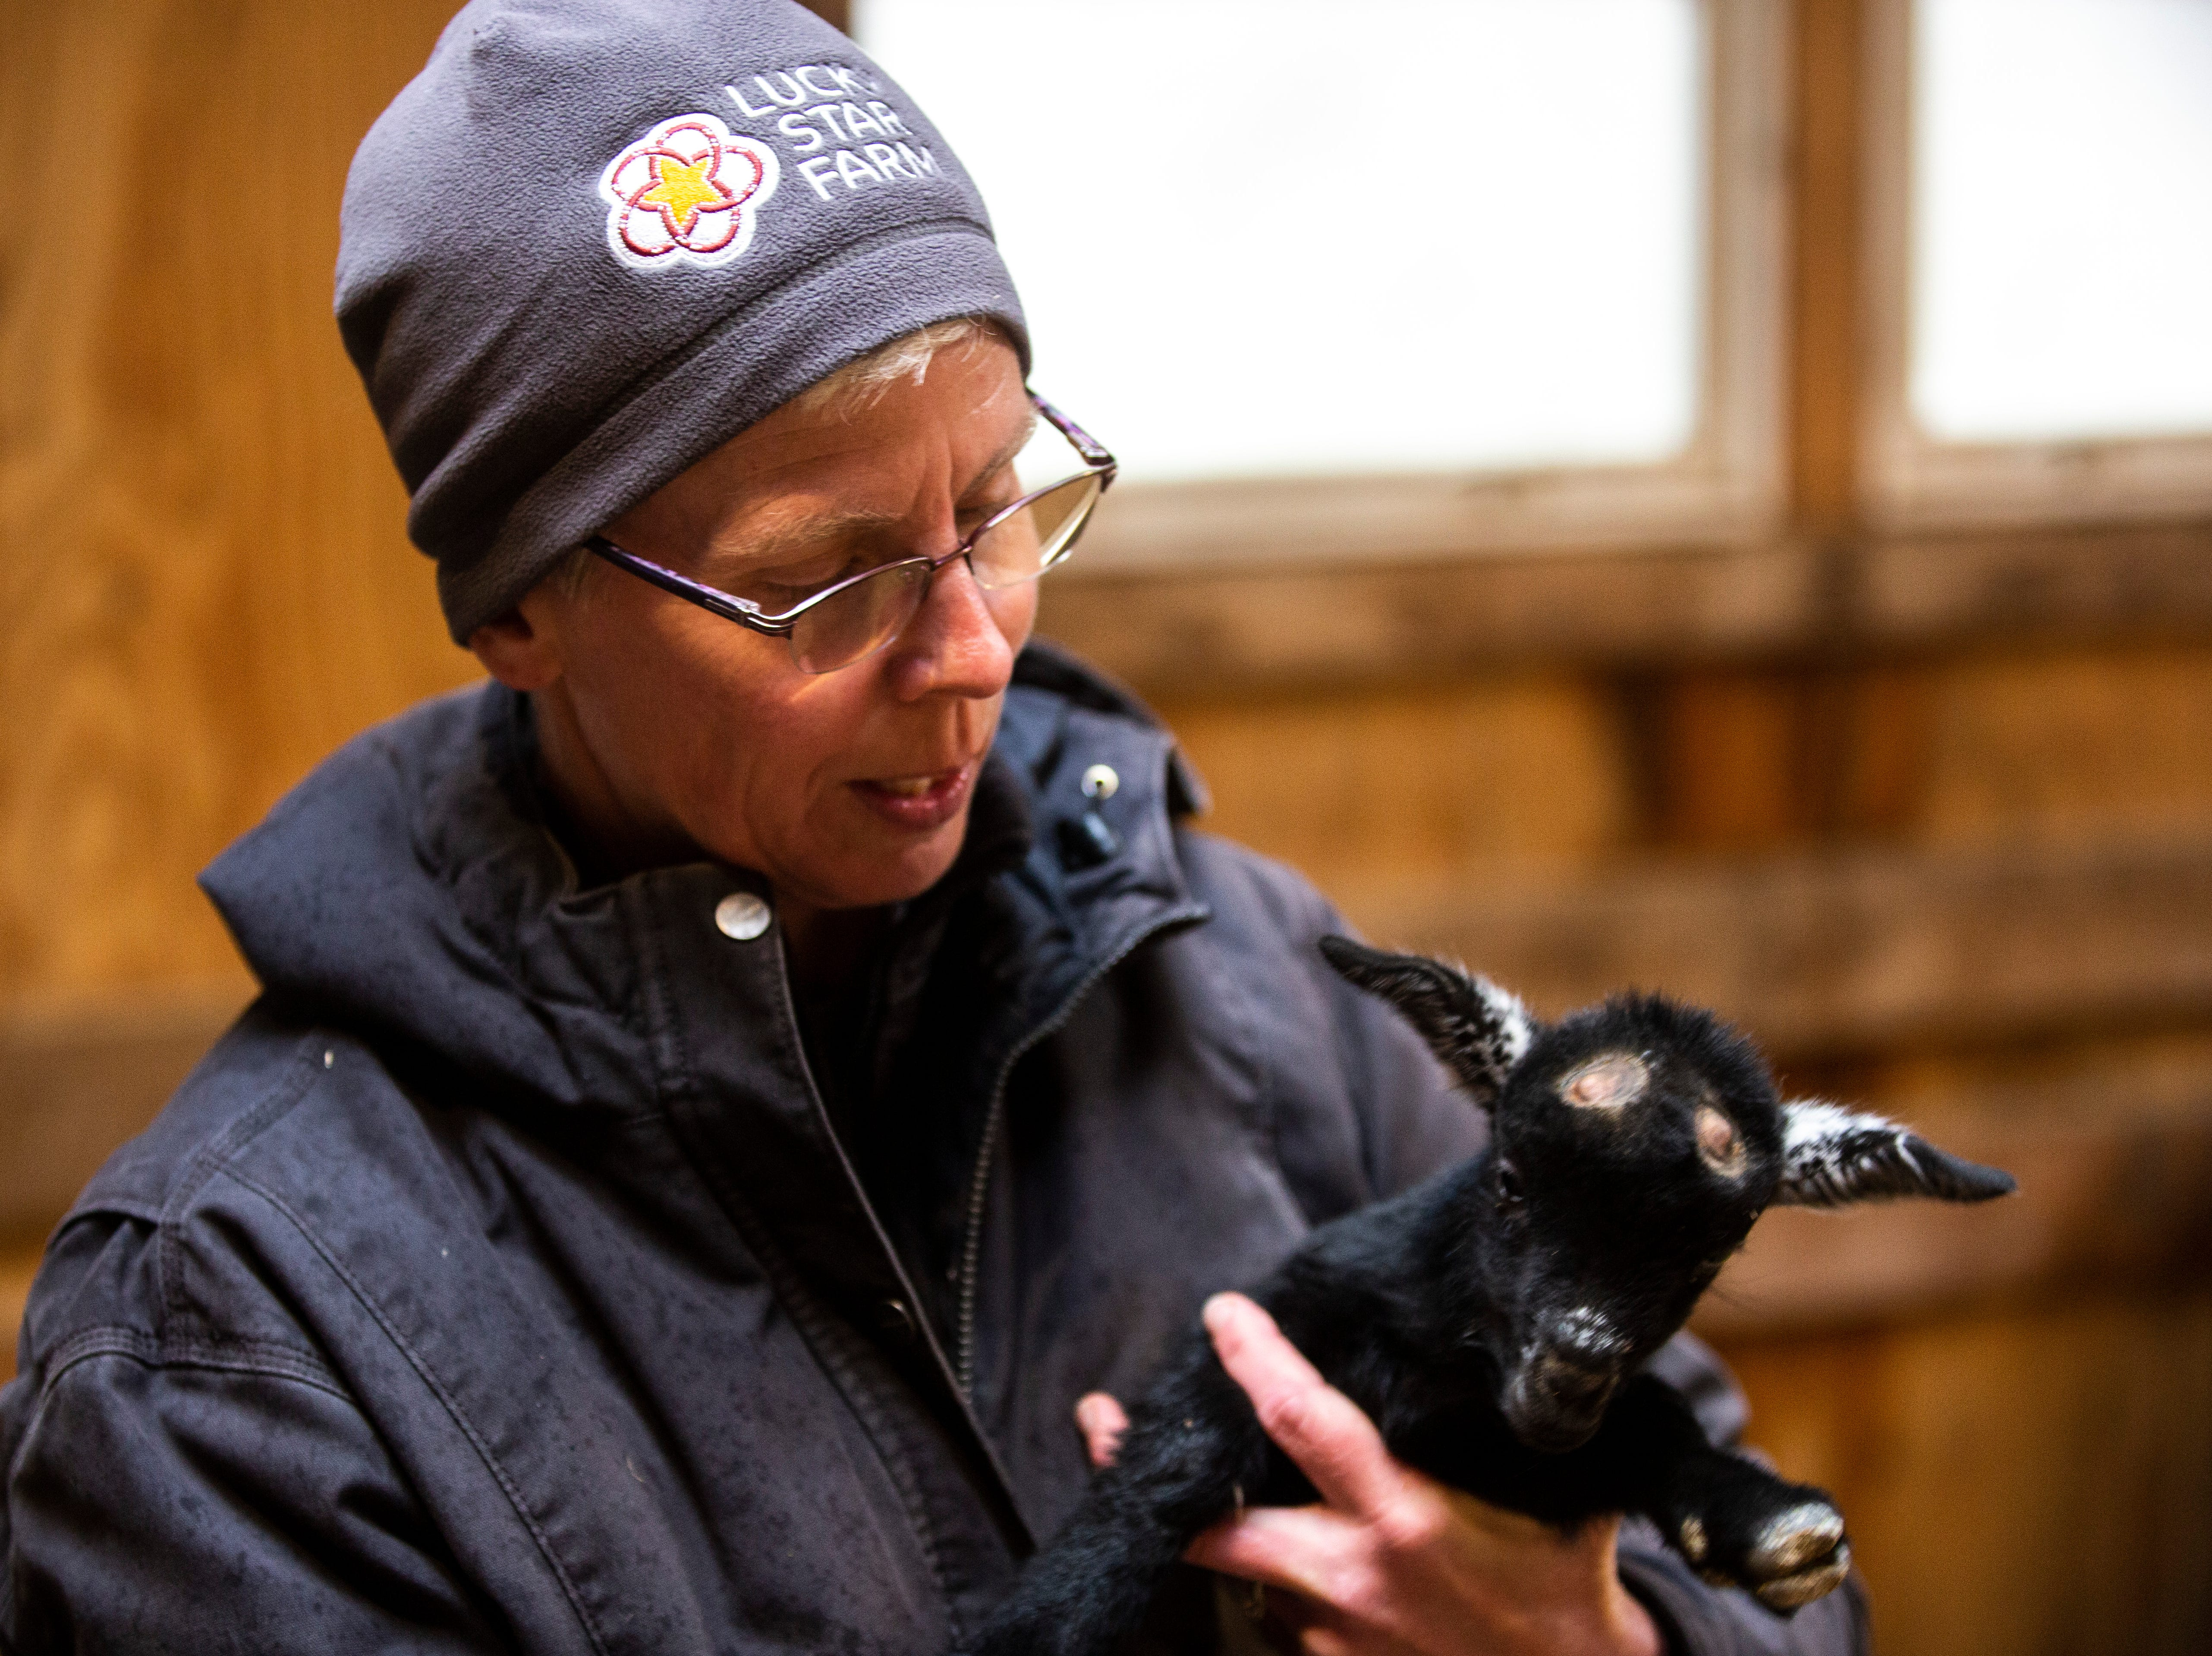 Susan Young feeds Rizzo, a young goat, on Thursday, April 11, 2019, at Lucky Star Farm in Iowa City, Iowa.